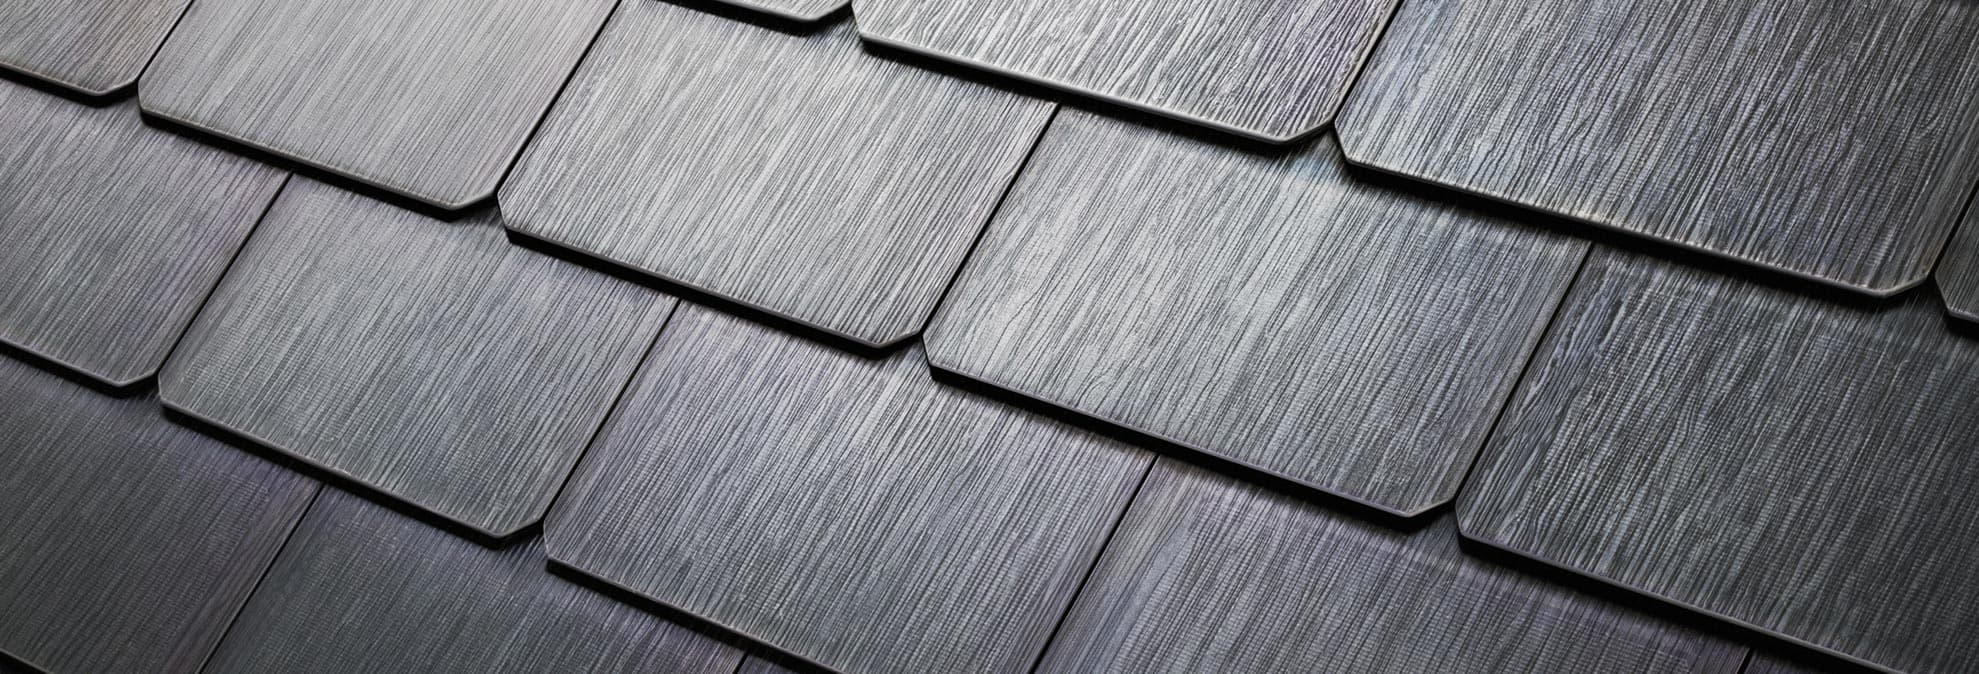 Cr Answers Questions About Tesla S Solar Roof Calculator